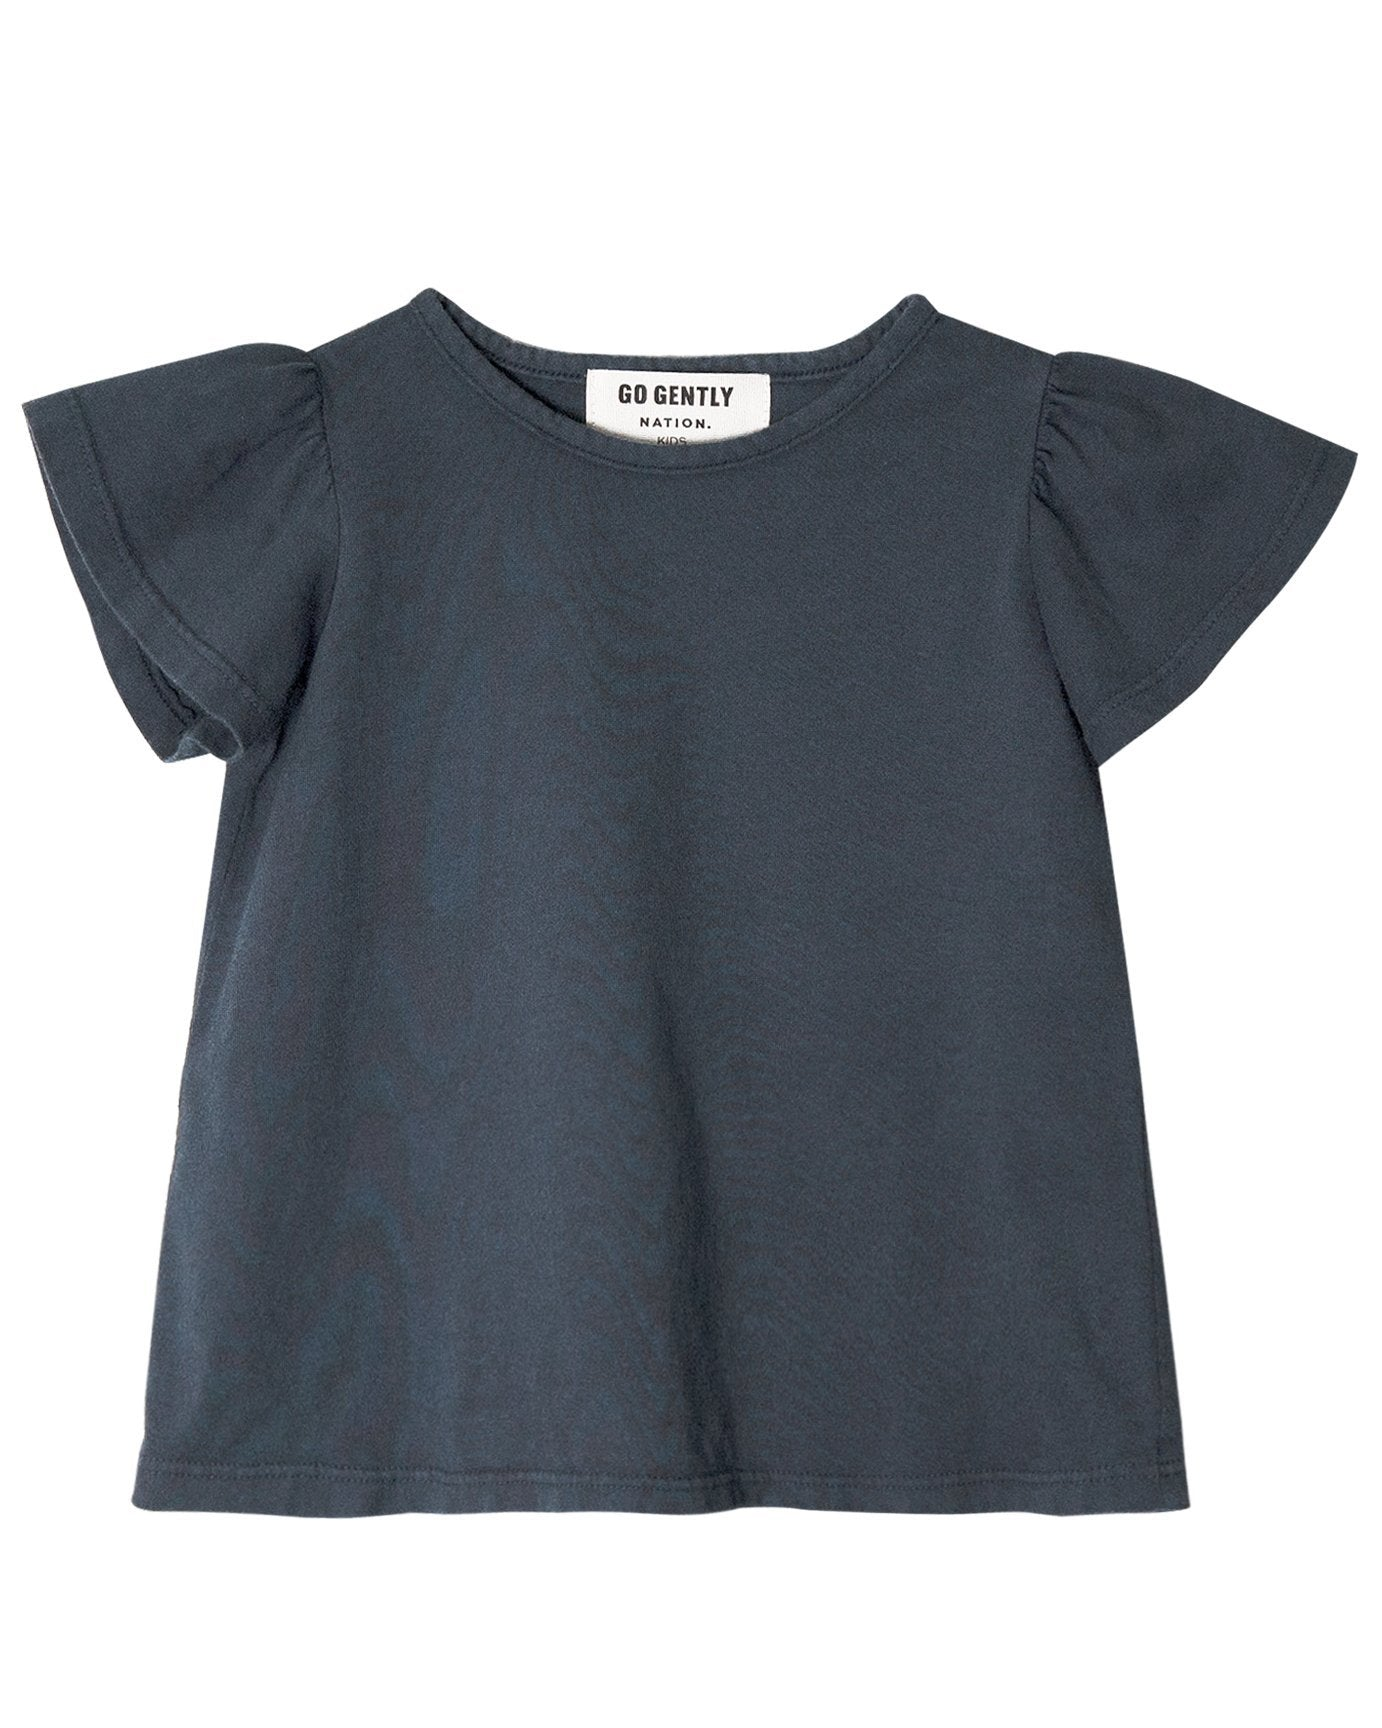 Little go gently nation girl jersey flutter tee in indigo